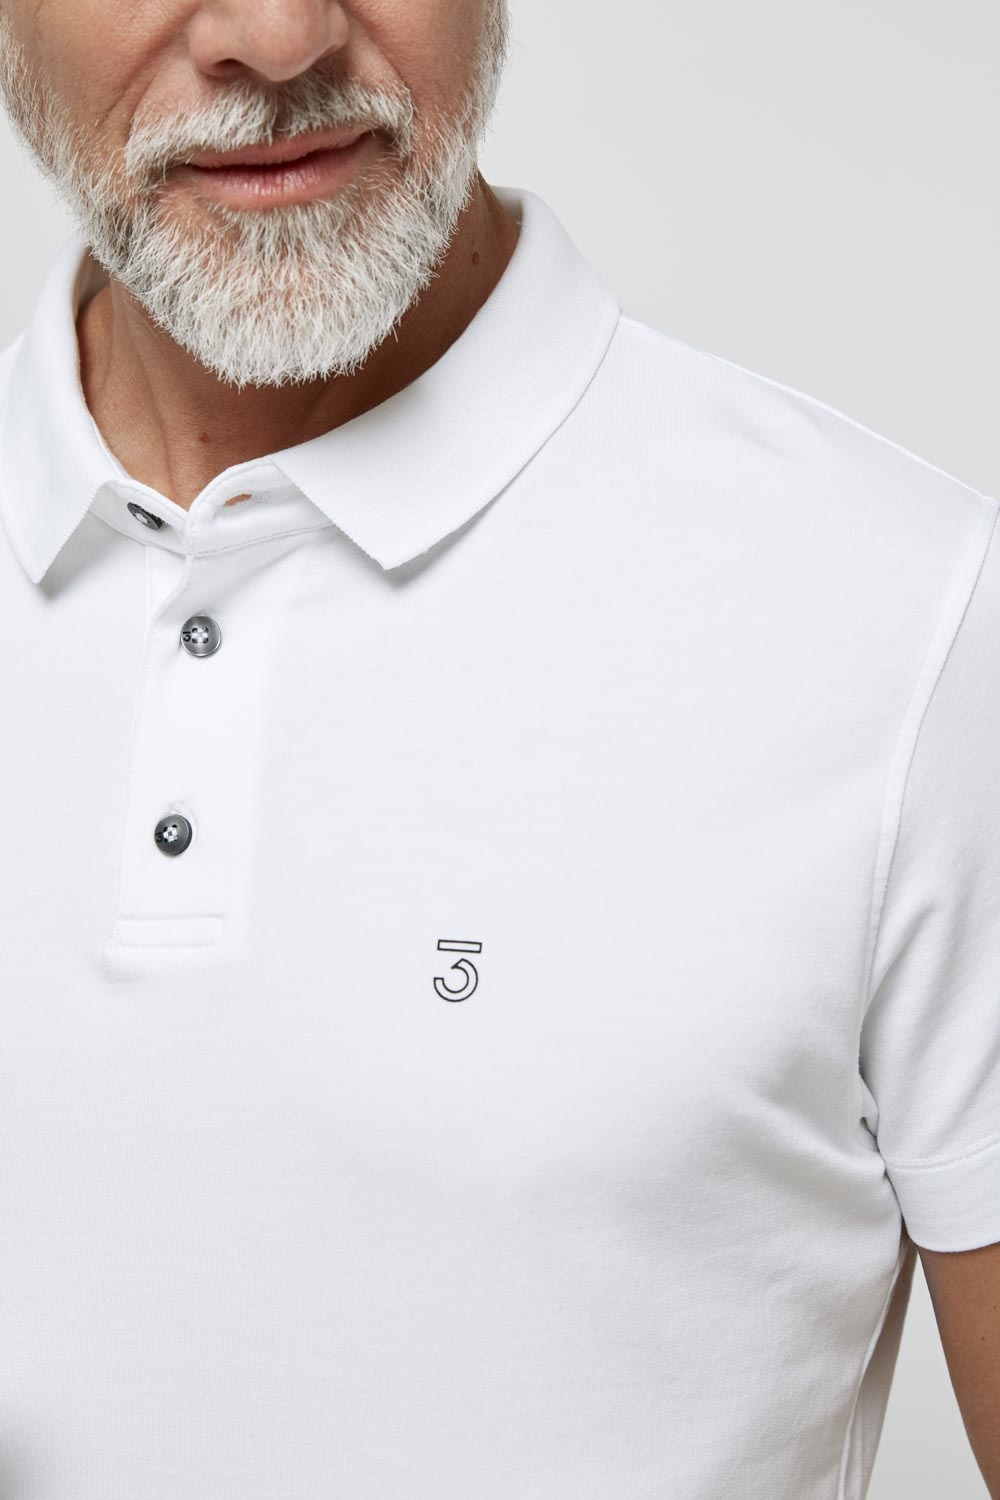 High comfort Lyocell Polo white-8